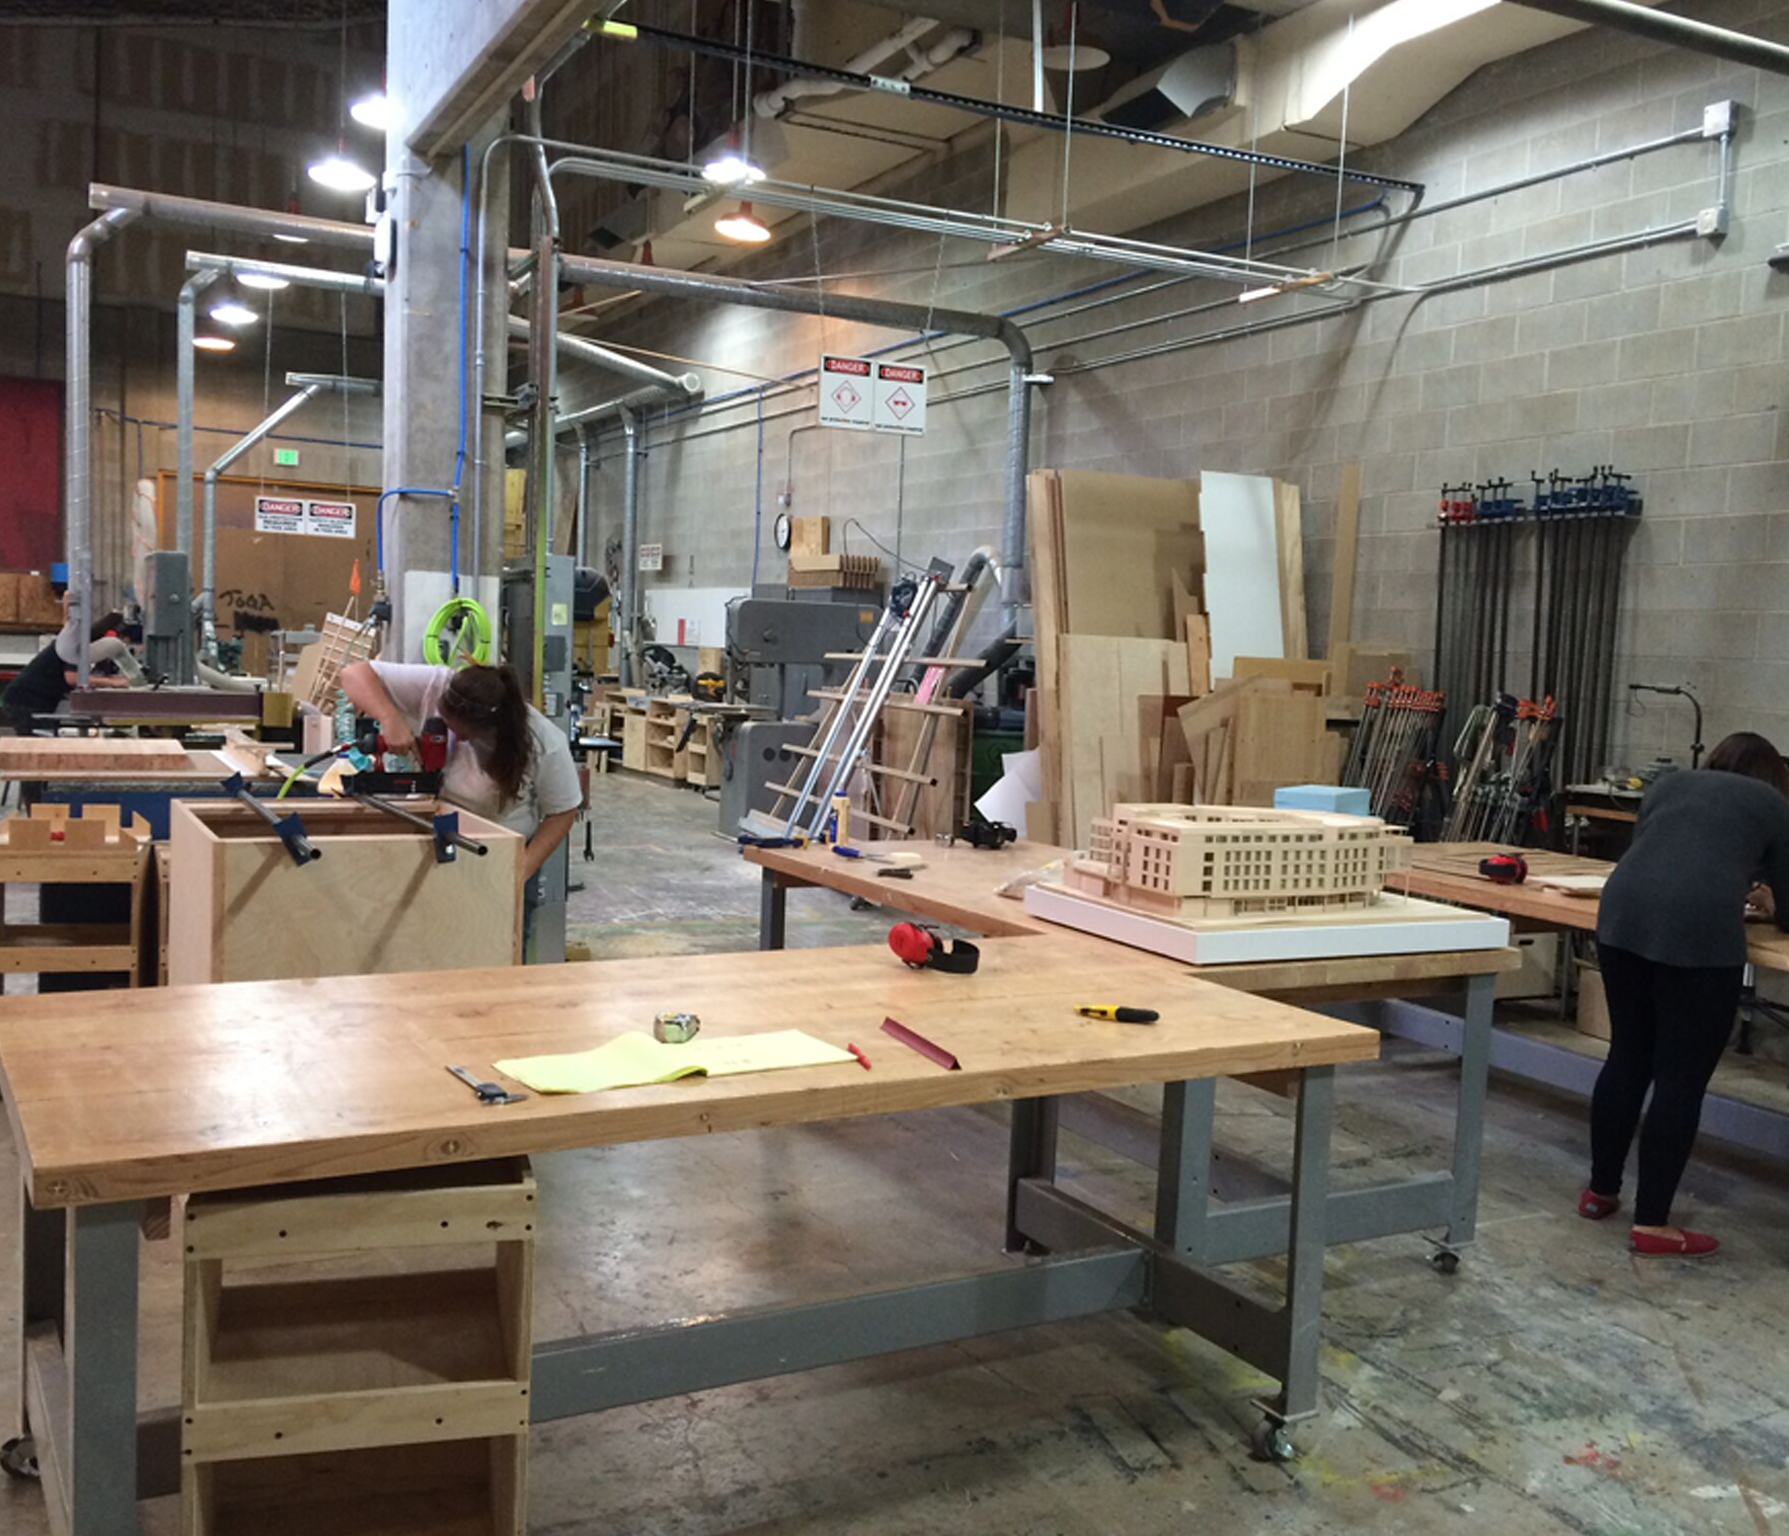 Students working on projects in the fabrication lab.